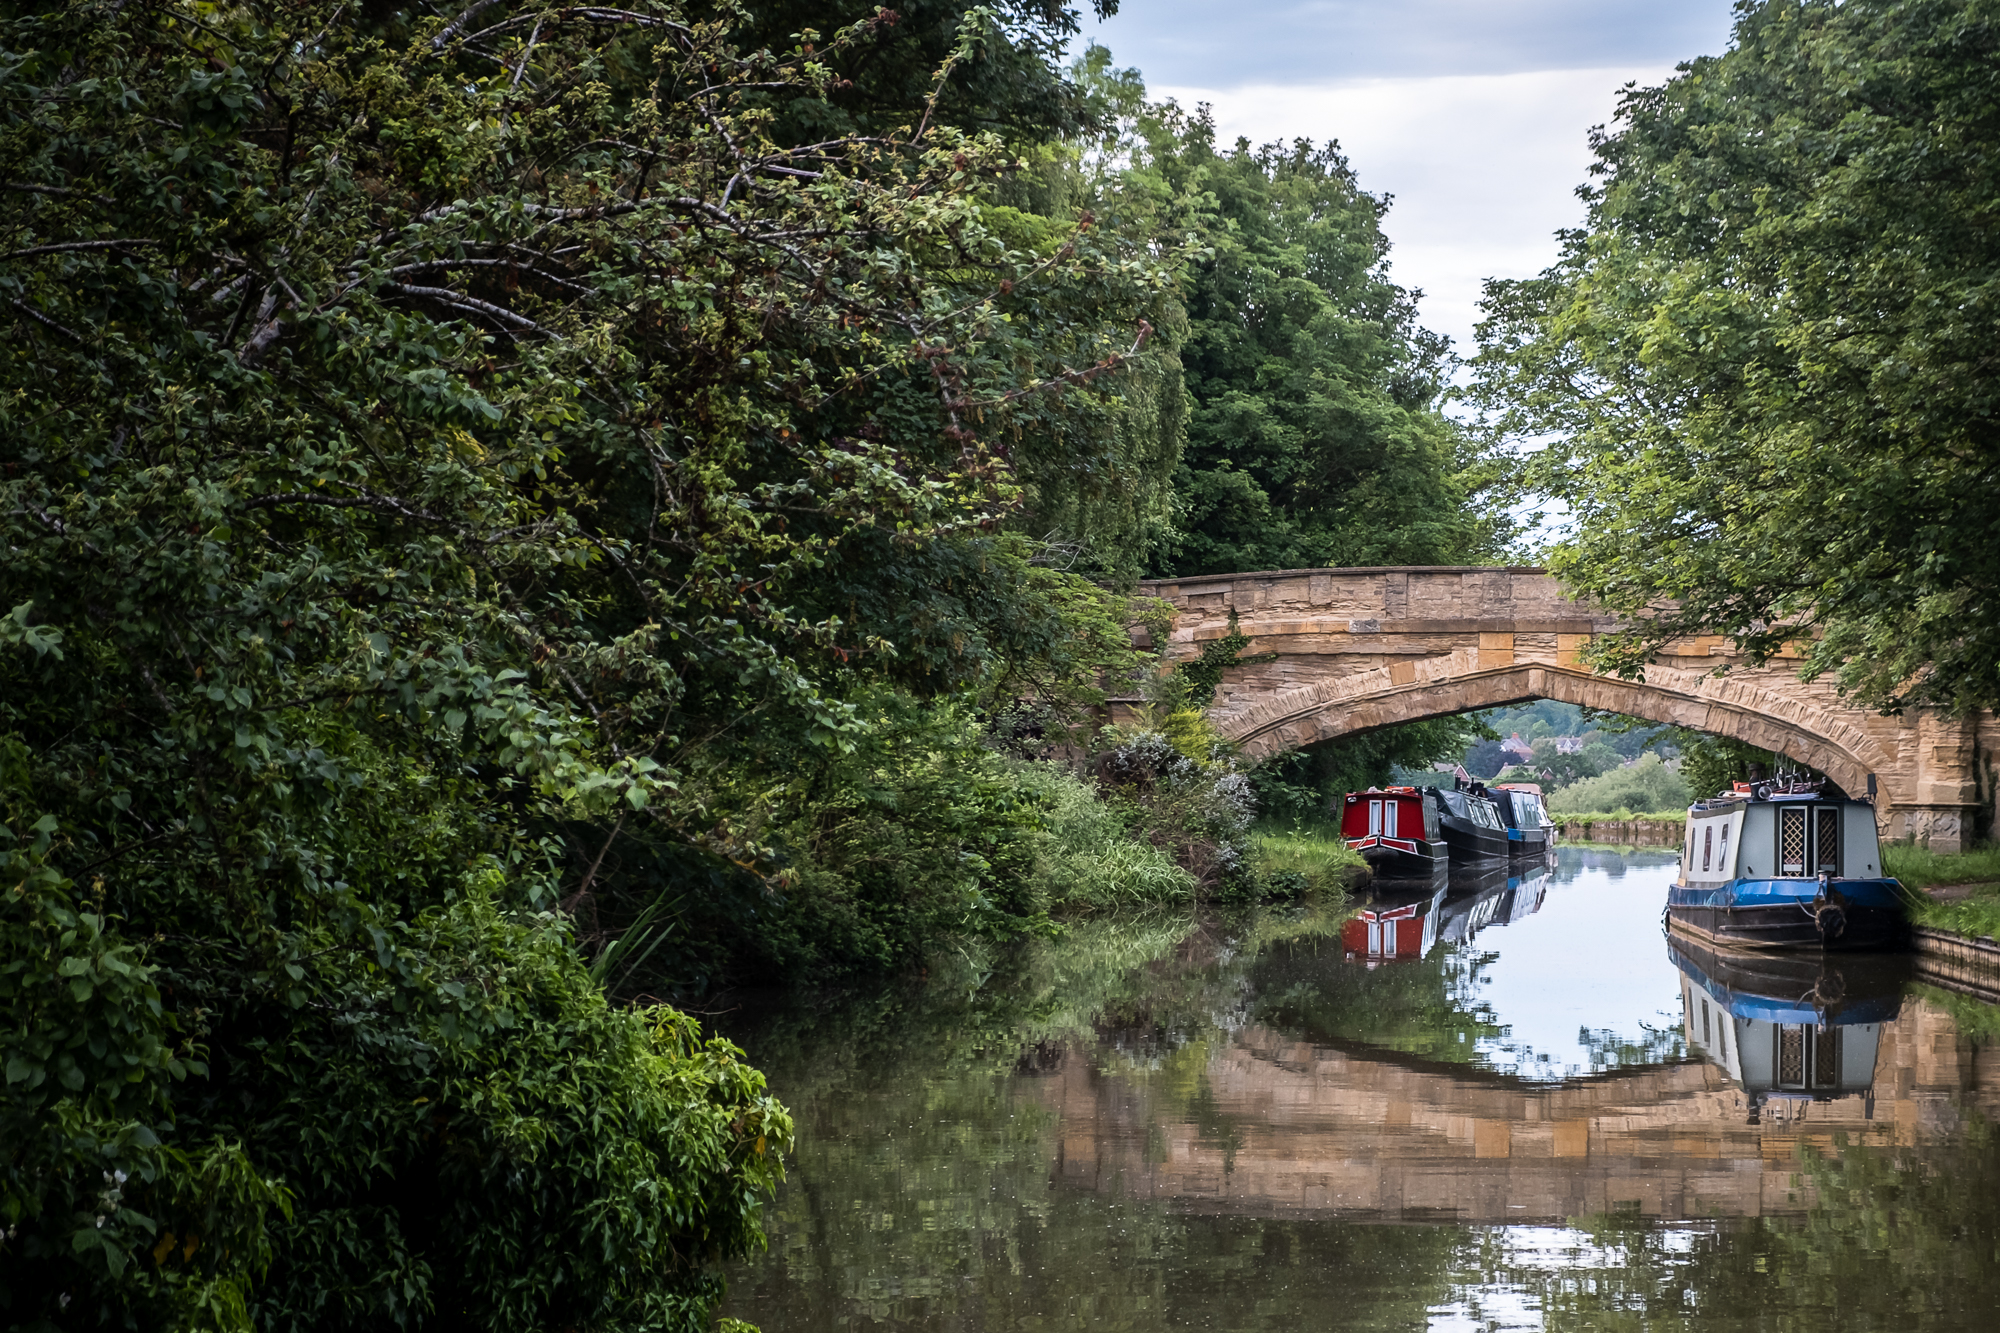 The Grand Union Canal | Fujifilm X-T30 | XF18-55mm | 55mm | 1/250 second | f/2 | ISO500